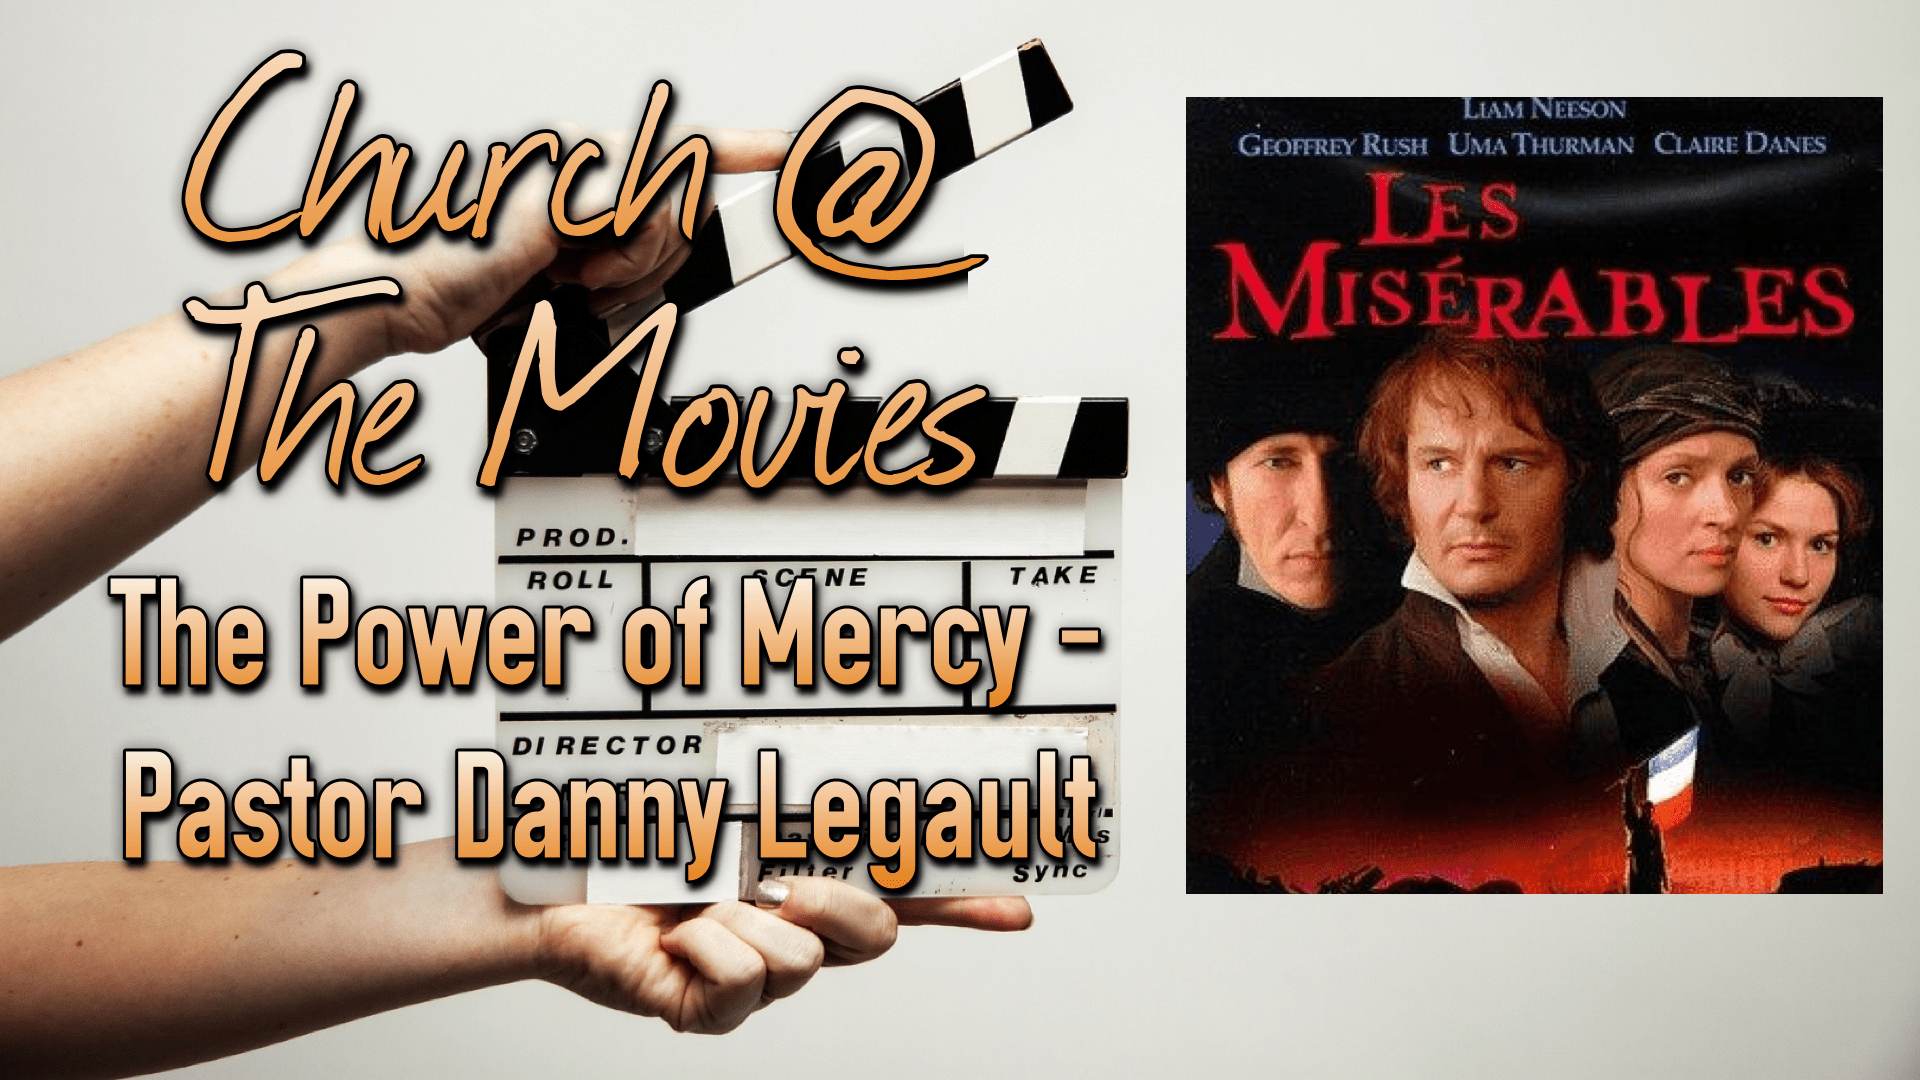 Church @ The Movies - Les Miserables - The Power of Mercy